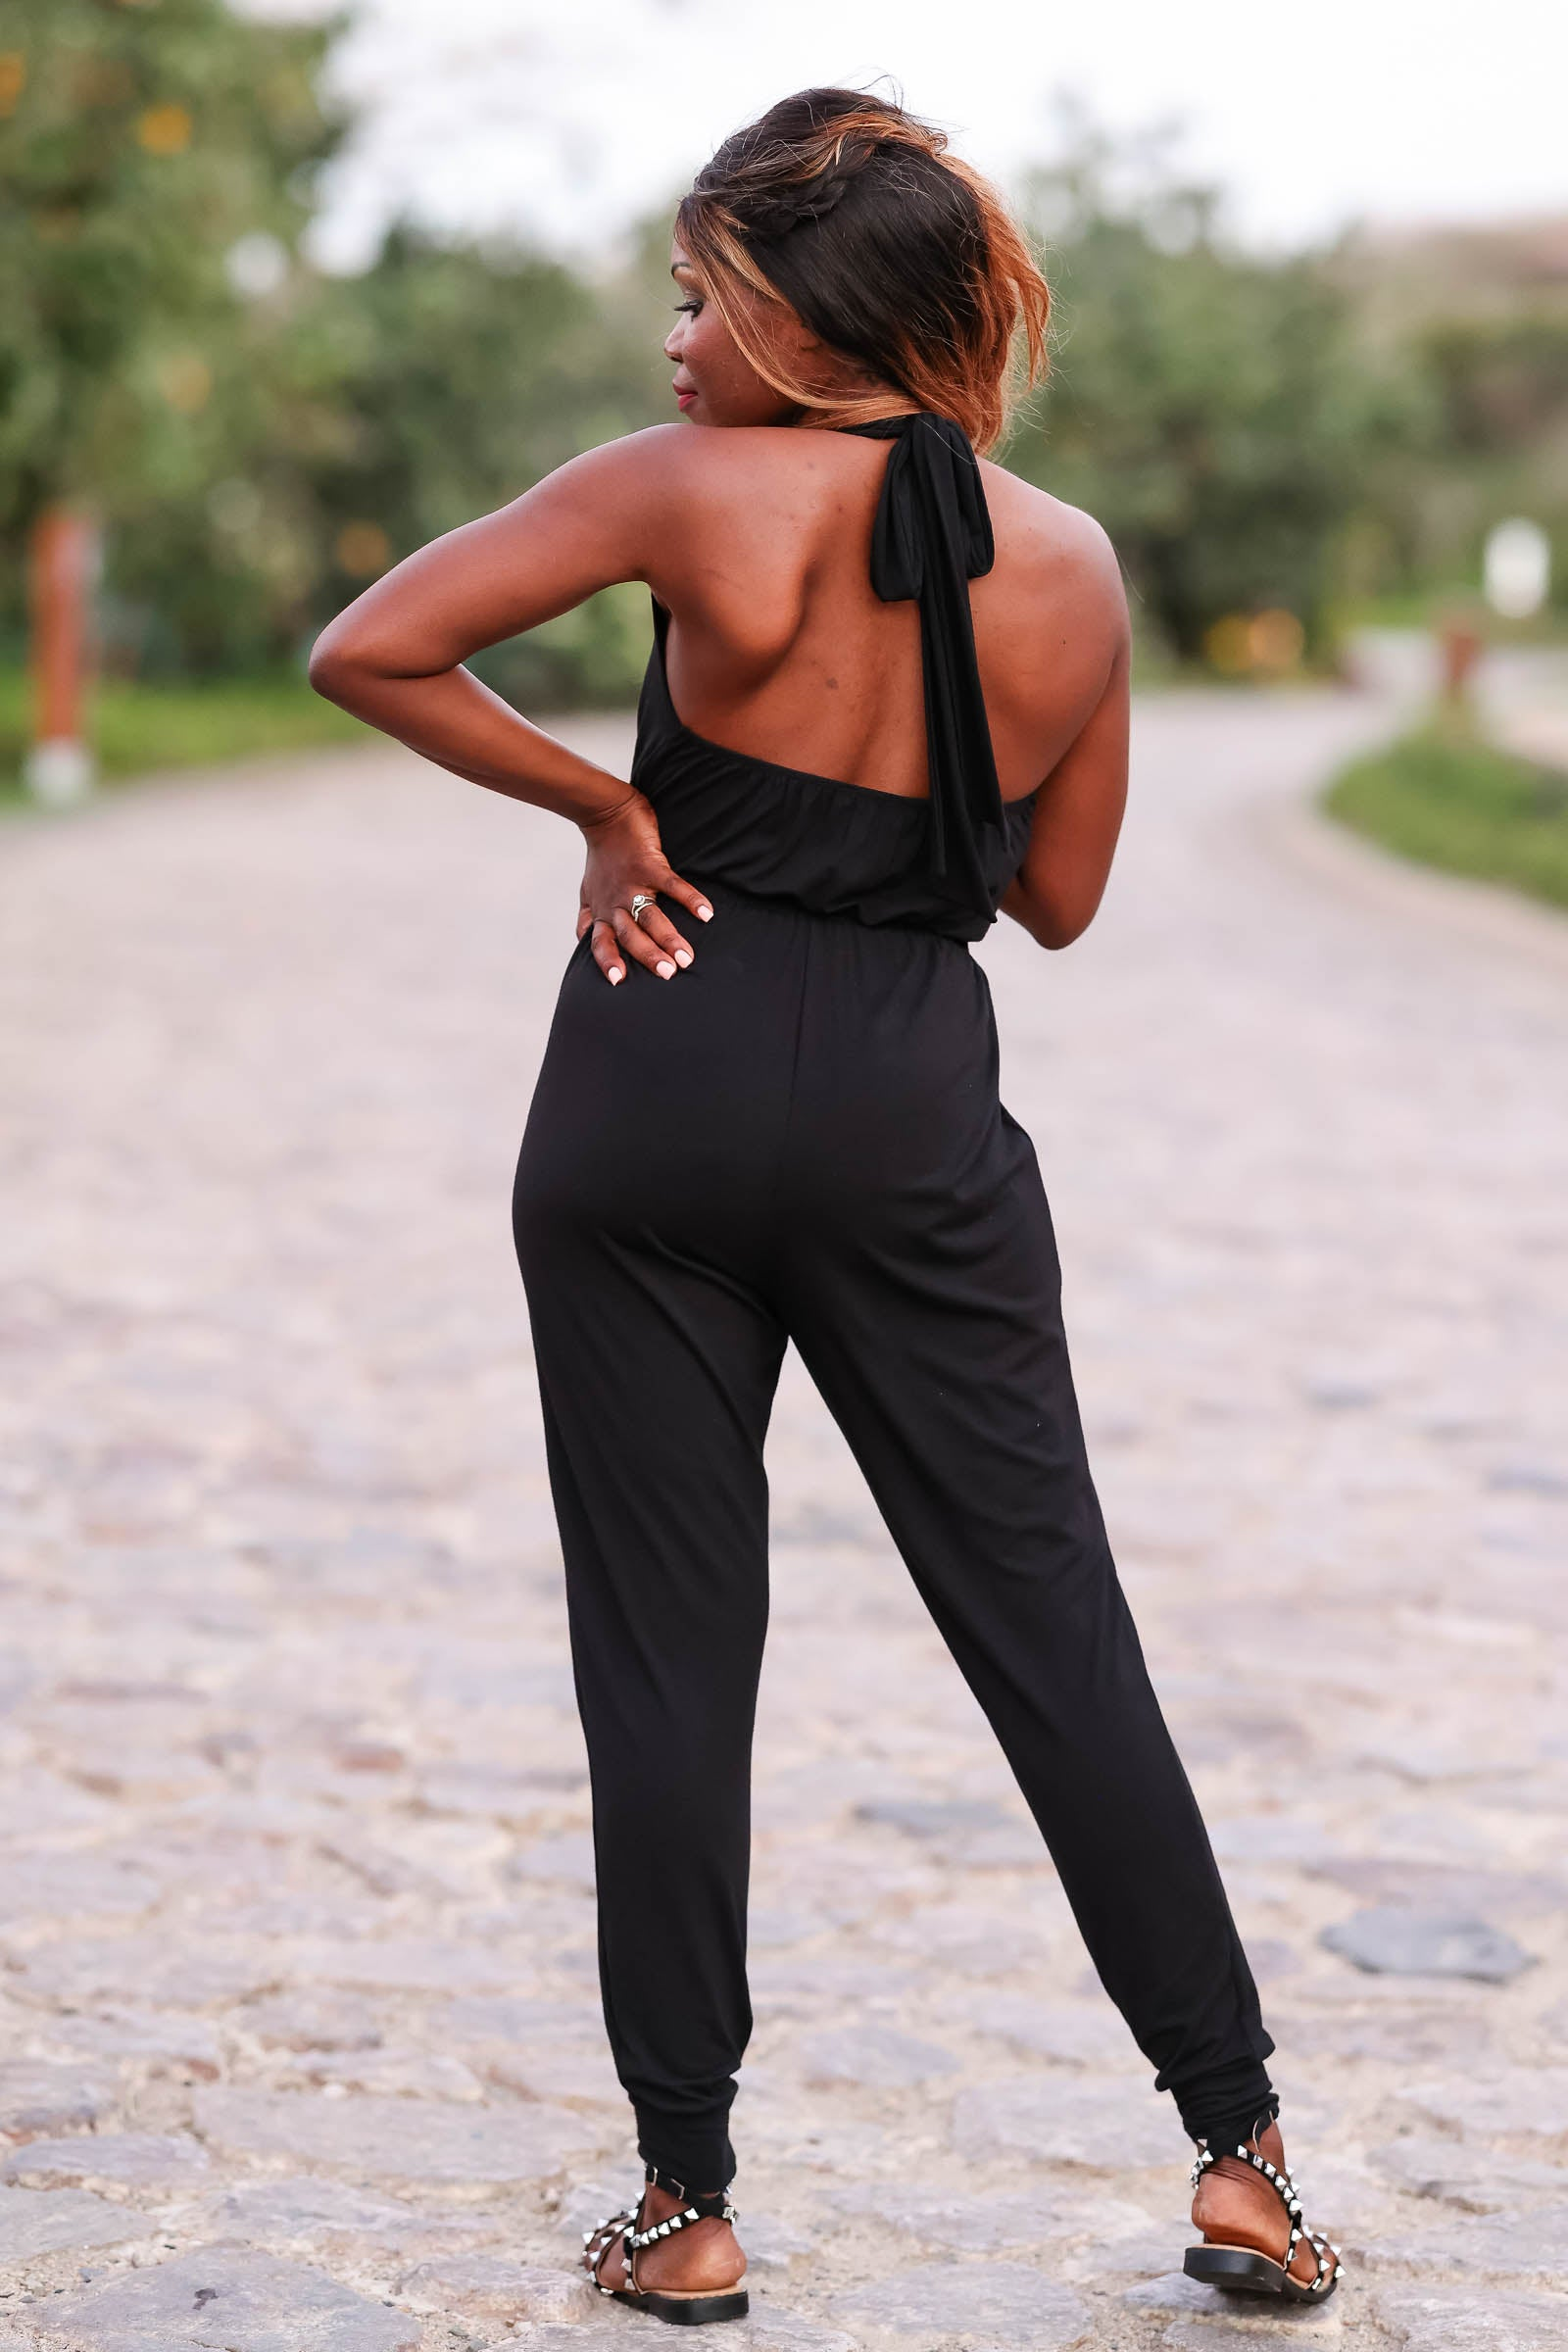 CBRAND In High Demand Jumpsuit - Black closet candy womens trendy open back halter neck jumpsuit front